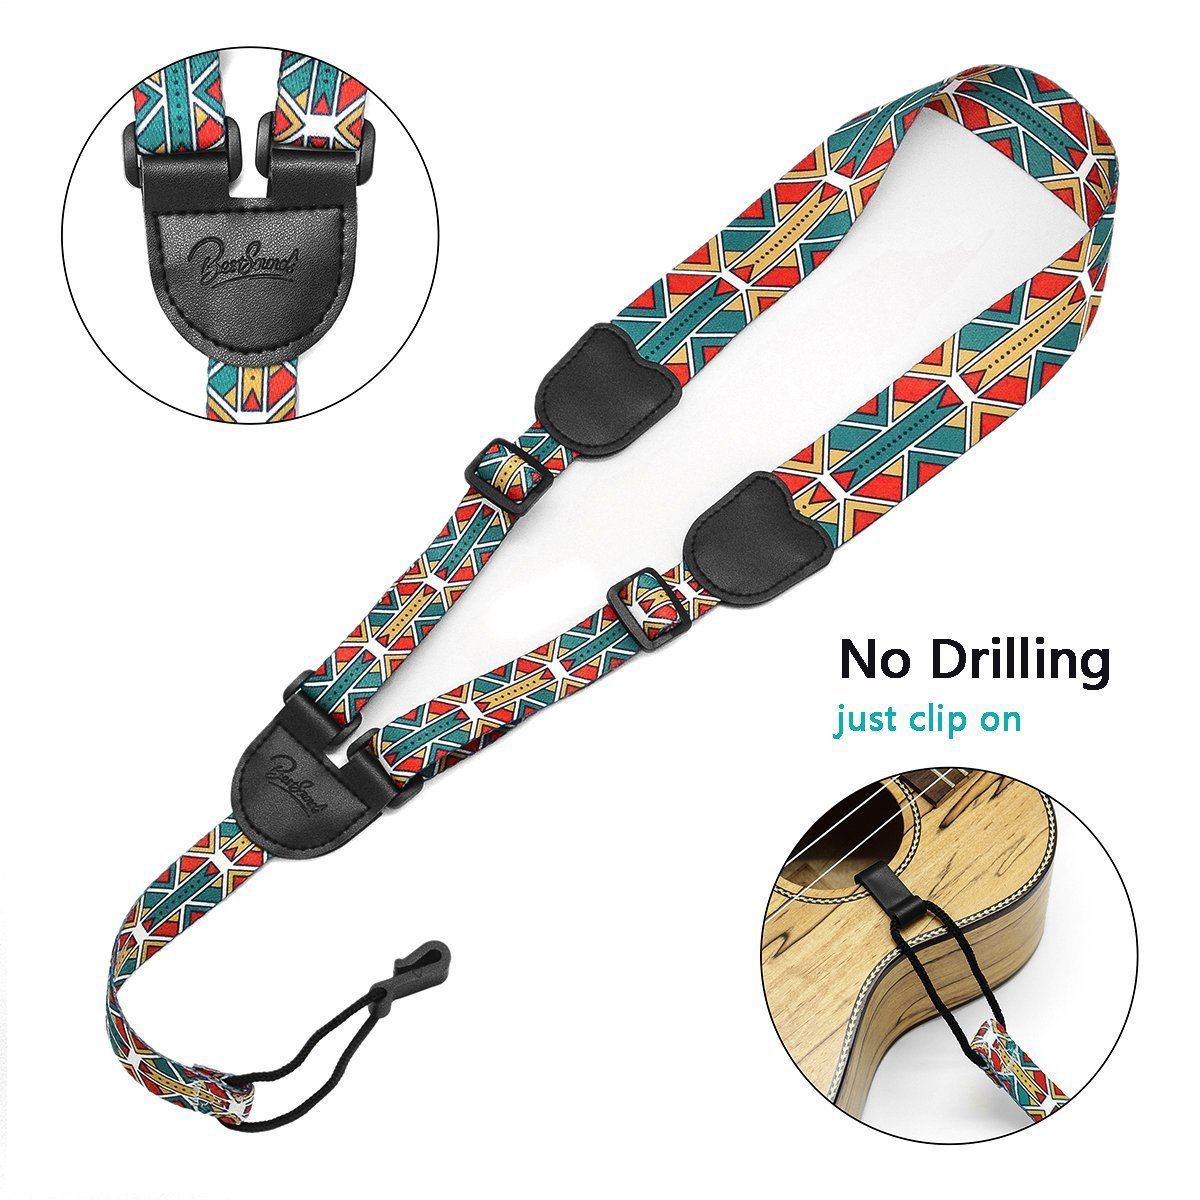 BestSounds Ukulele Strap No Drilling Printed Clip On Ukulele Strap Fits Any Ukulele Sizes (US- Orange) Rinastore US-10